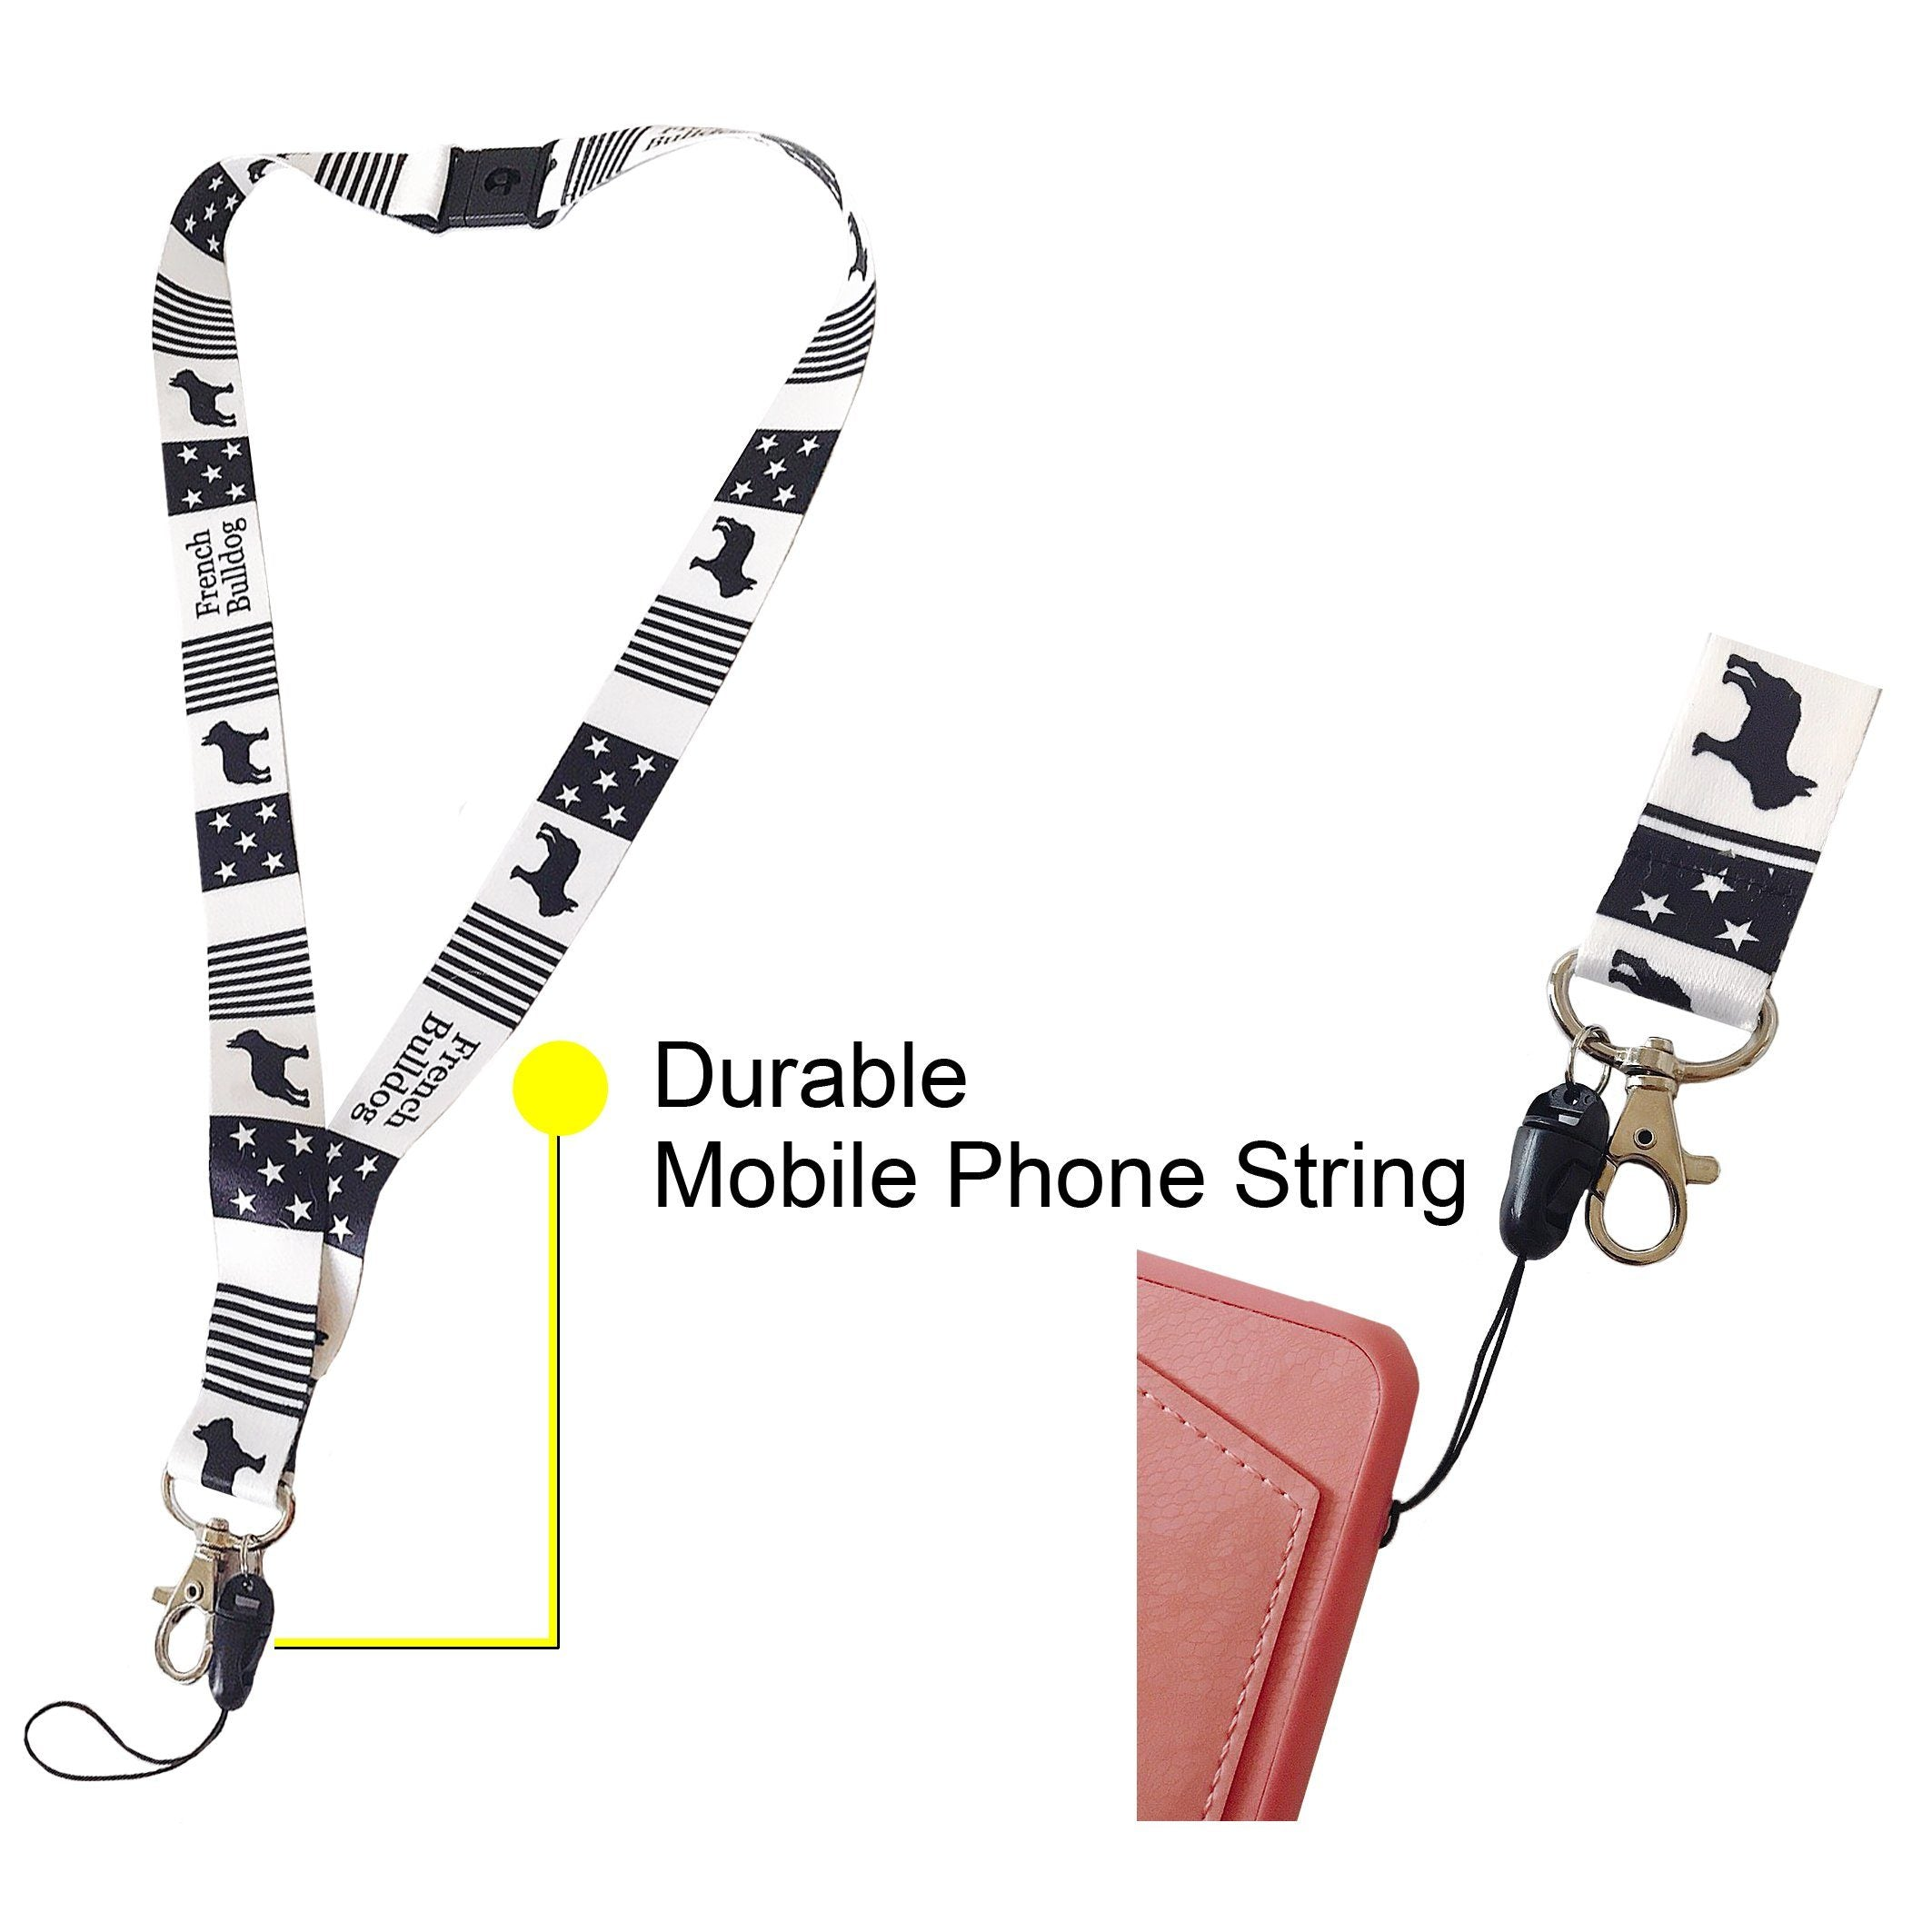 "Frenchic French Bulldog Fabric Lanyard Neck Strap with Safety Breakaway Clip Black Stars and Stripe Wide 1"" for ID Card Mobile Phone Badge Holder, Frenchic"